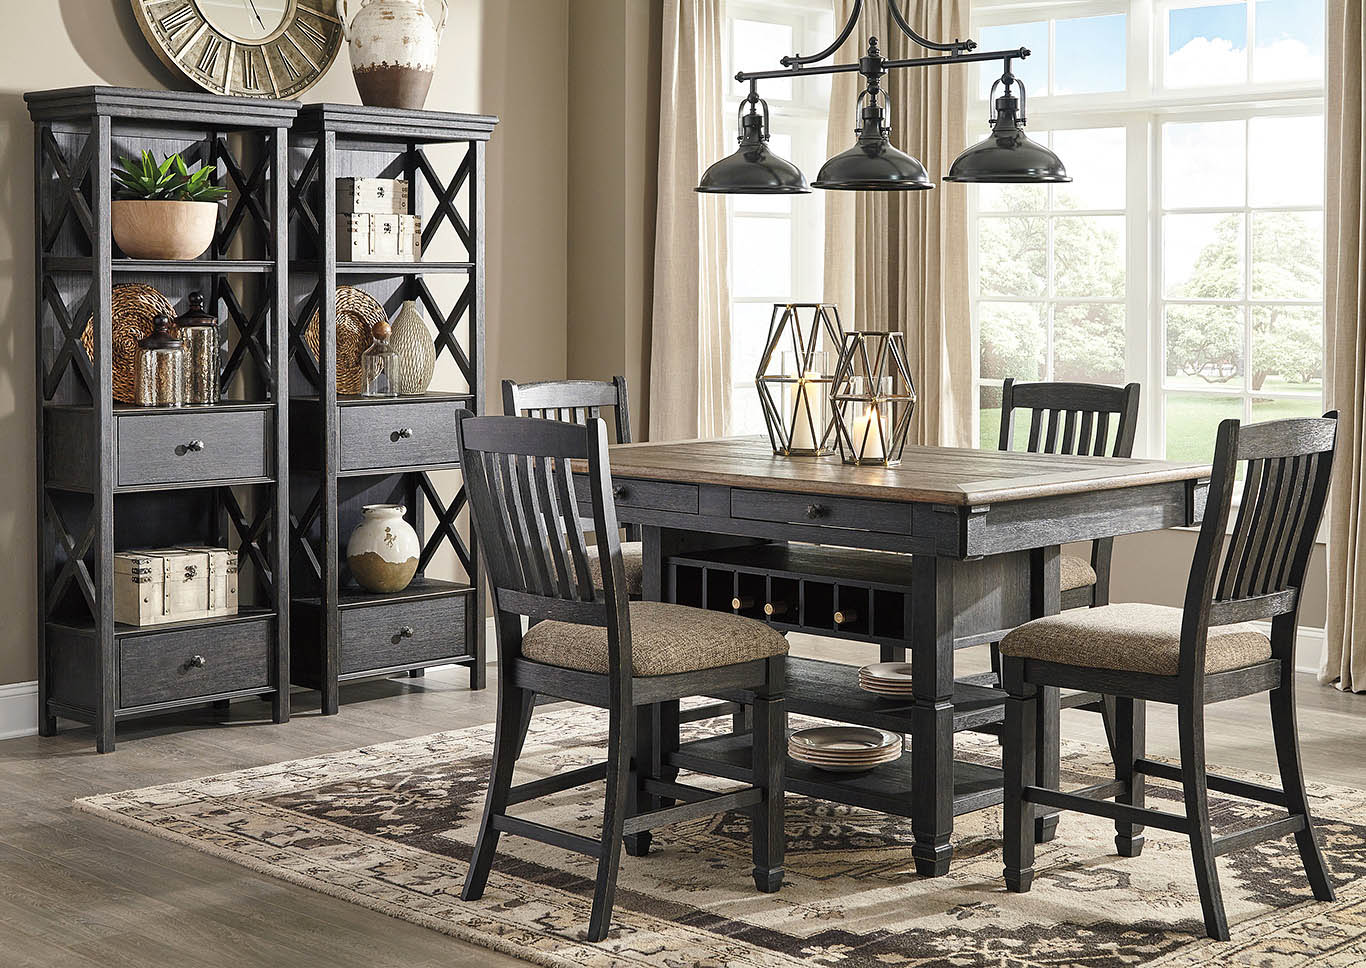 Tyler Creek Counter Height Dining Set w/4 Counter Stools and 2 Cabinets,Signature Design By Ashley